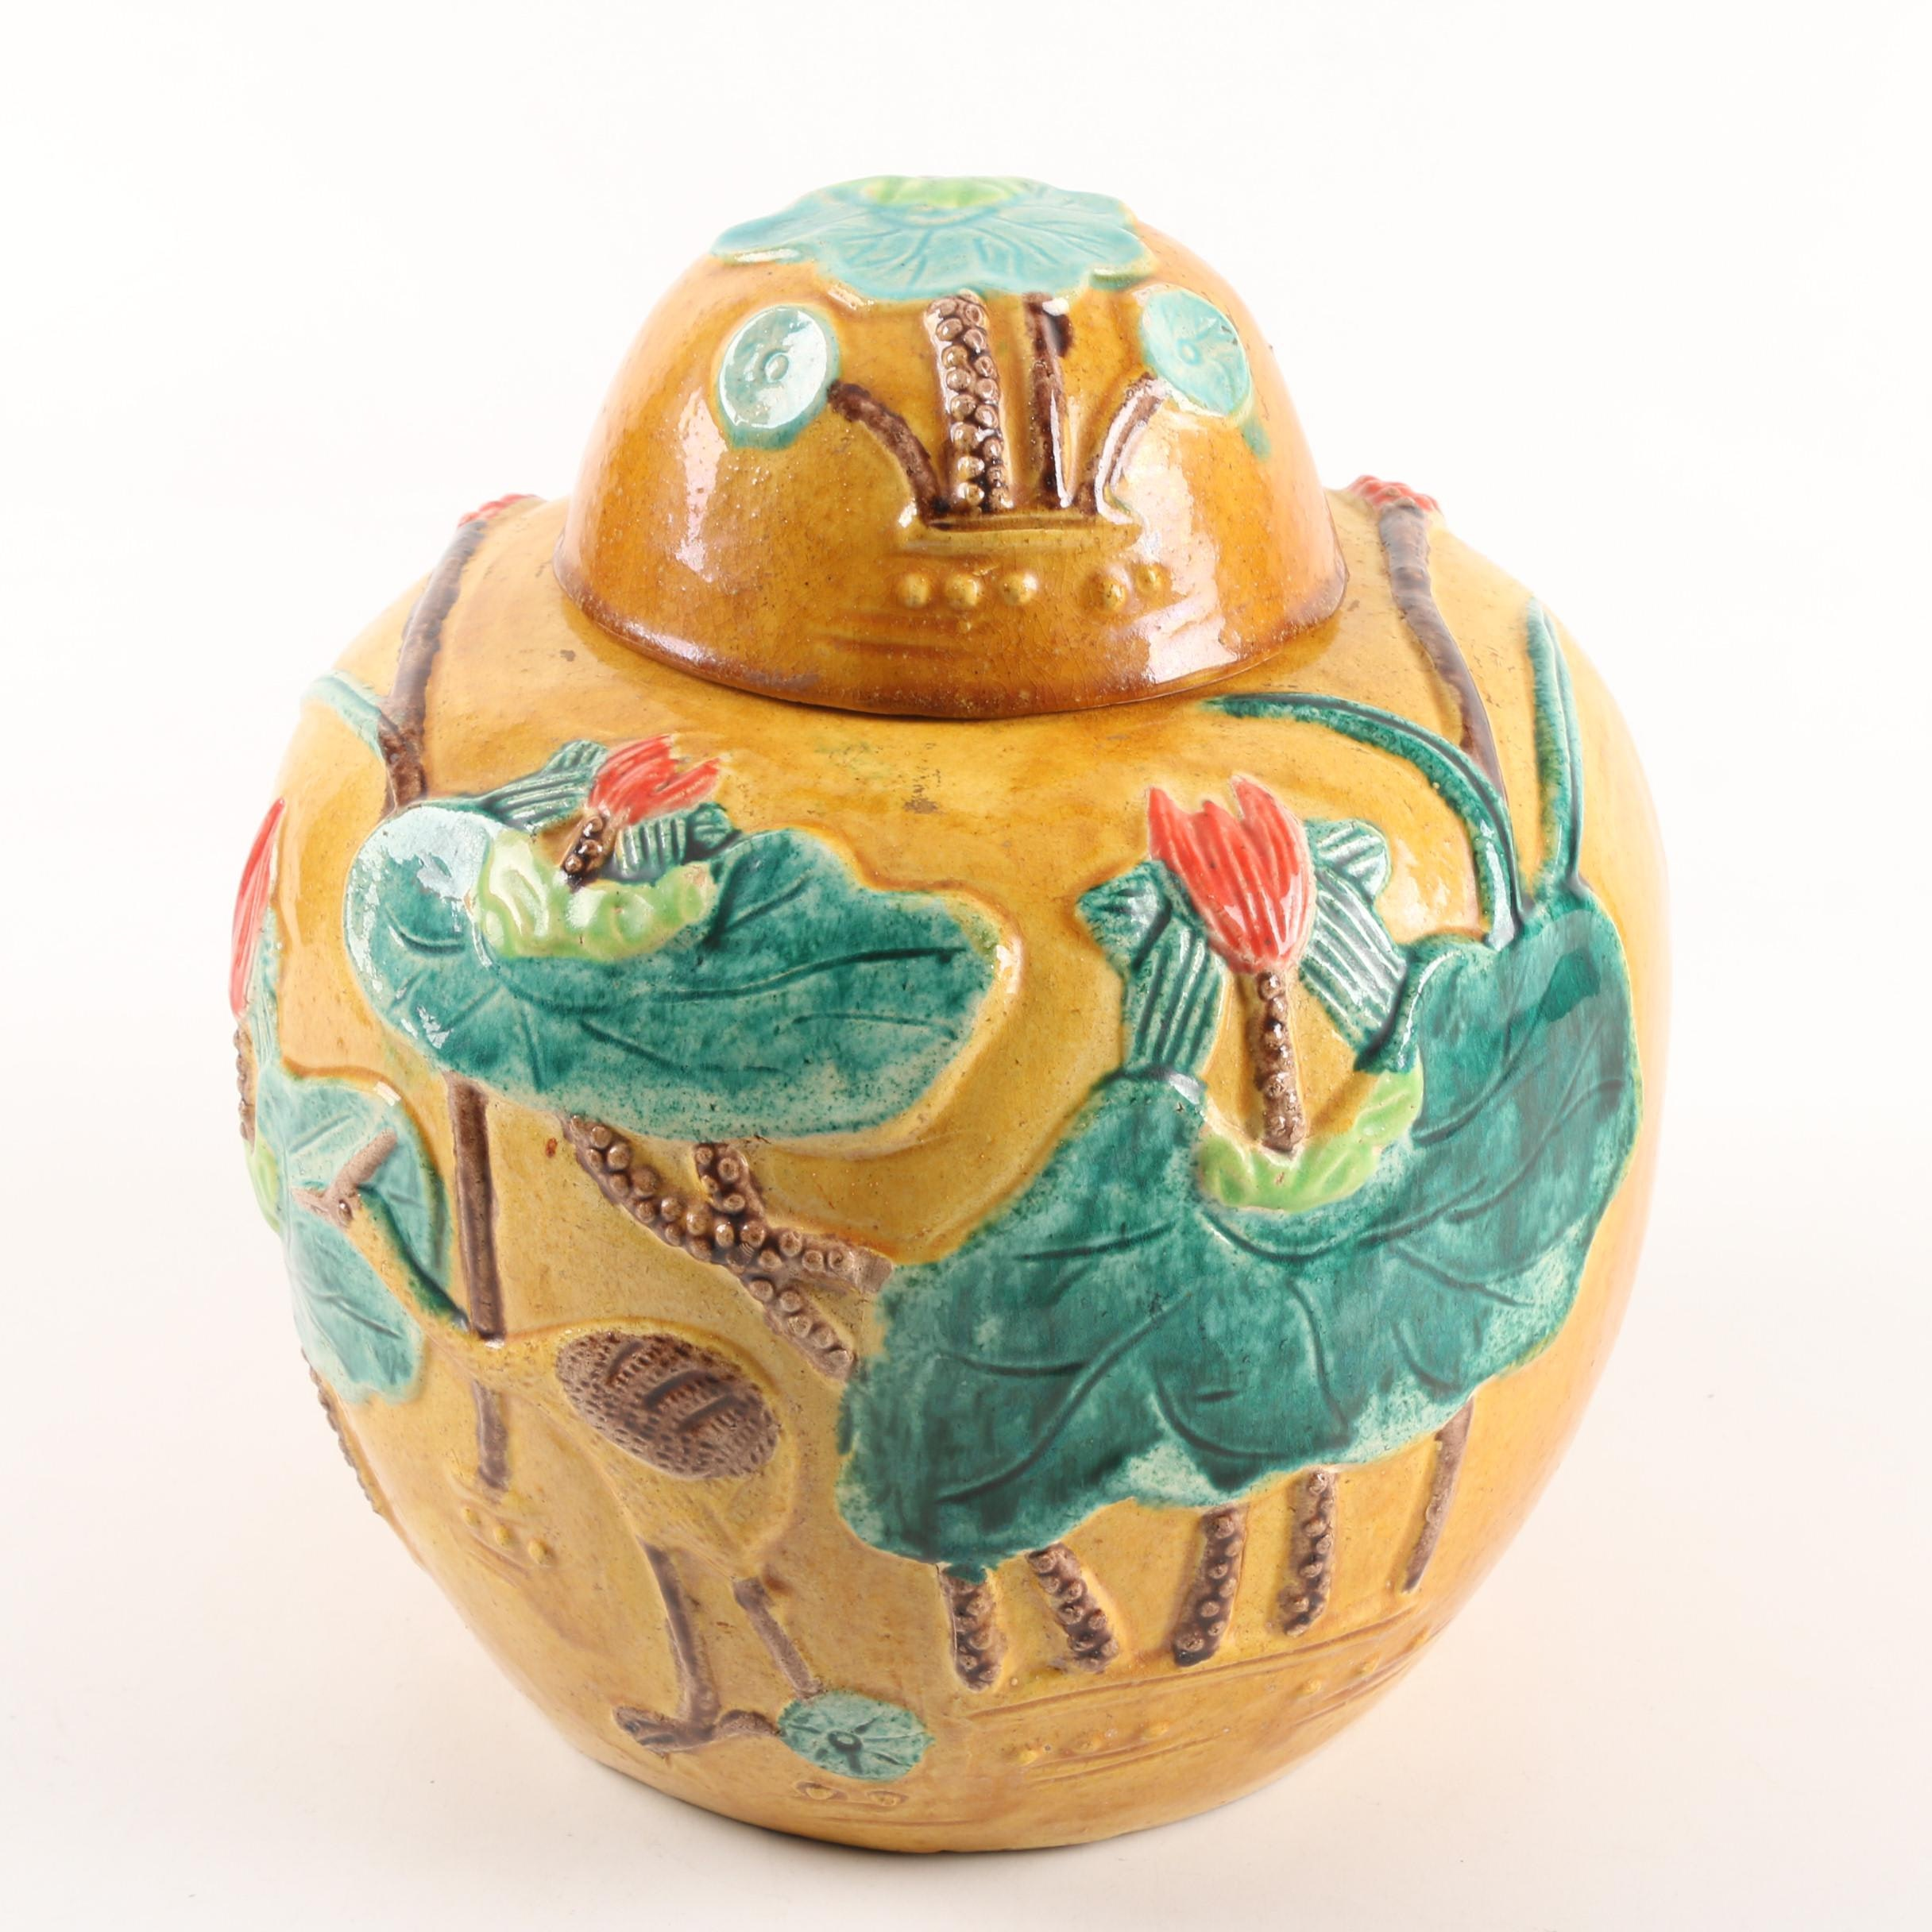 Chinese Wang Bing Rong-Style Earthenware Ginger Jar